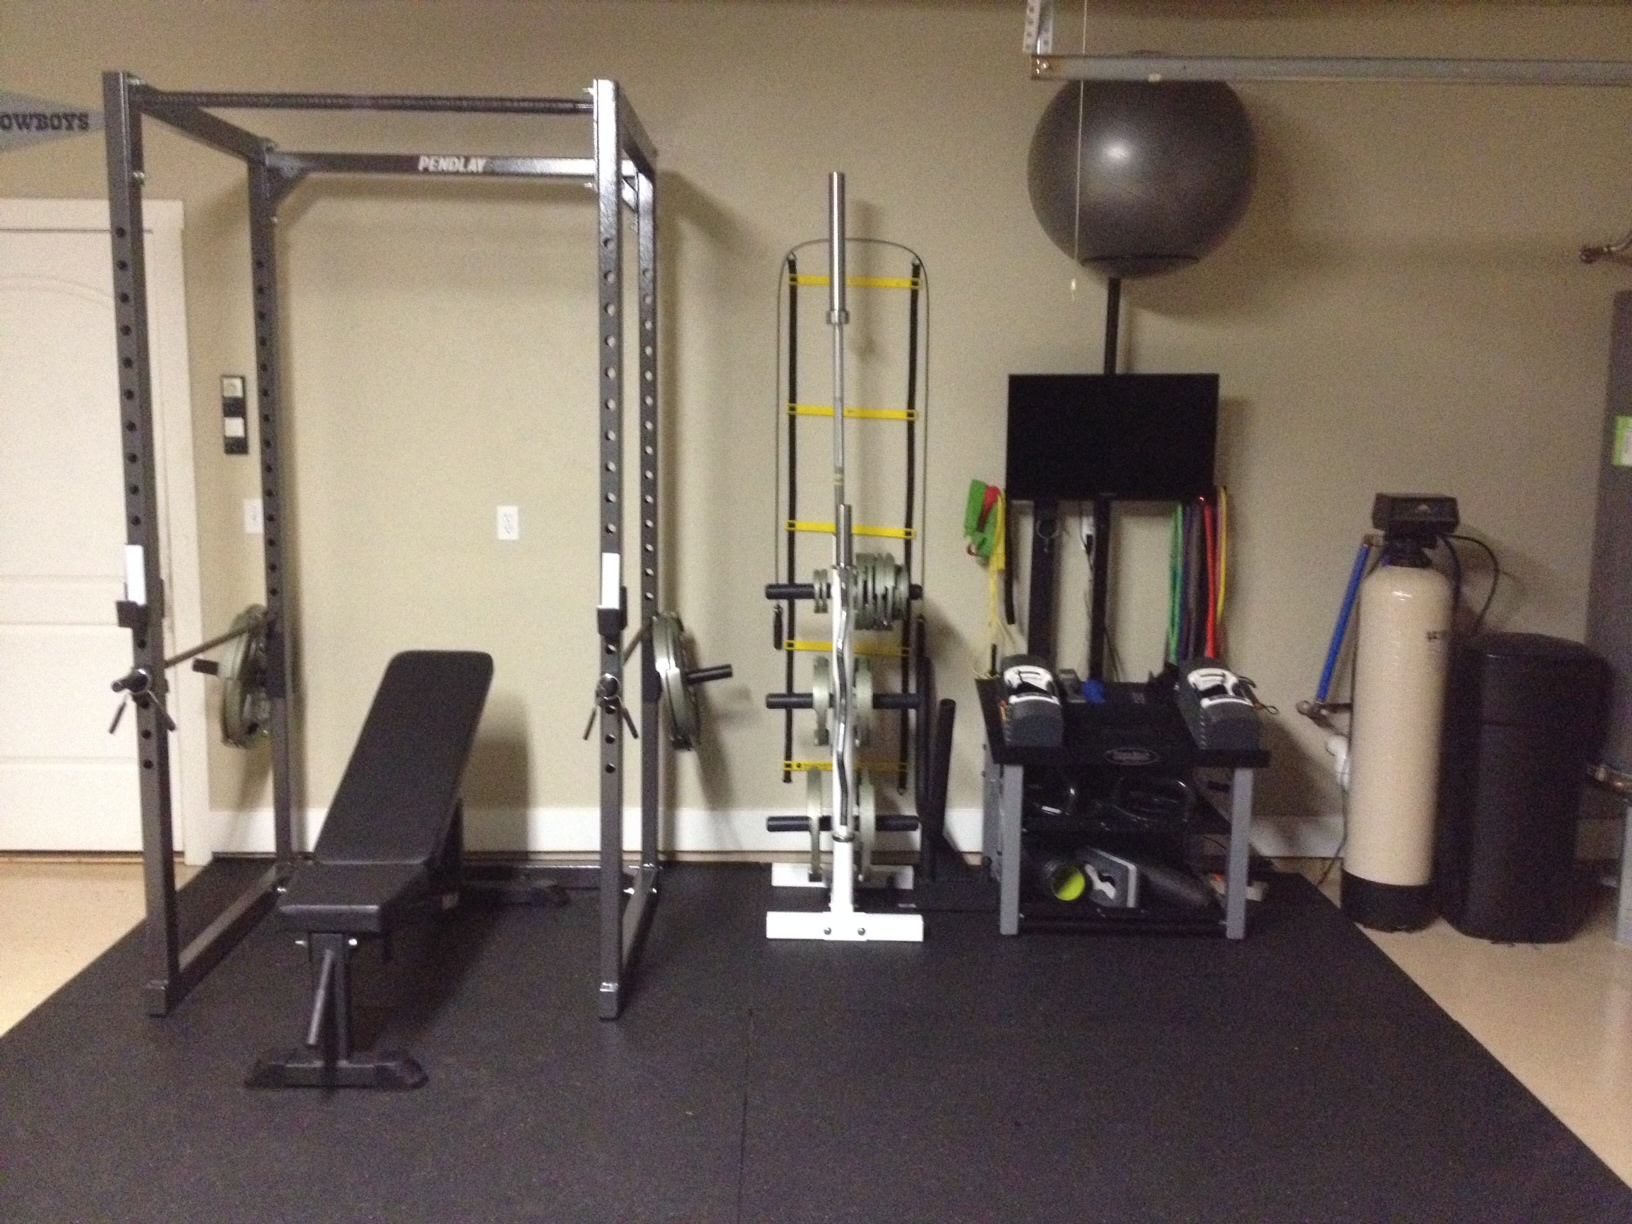 Garage gym emangelize